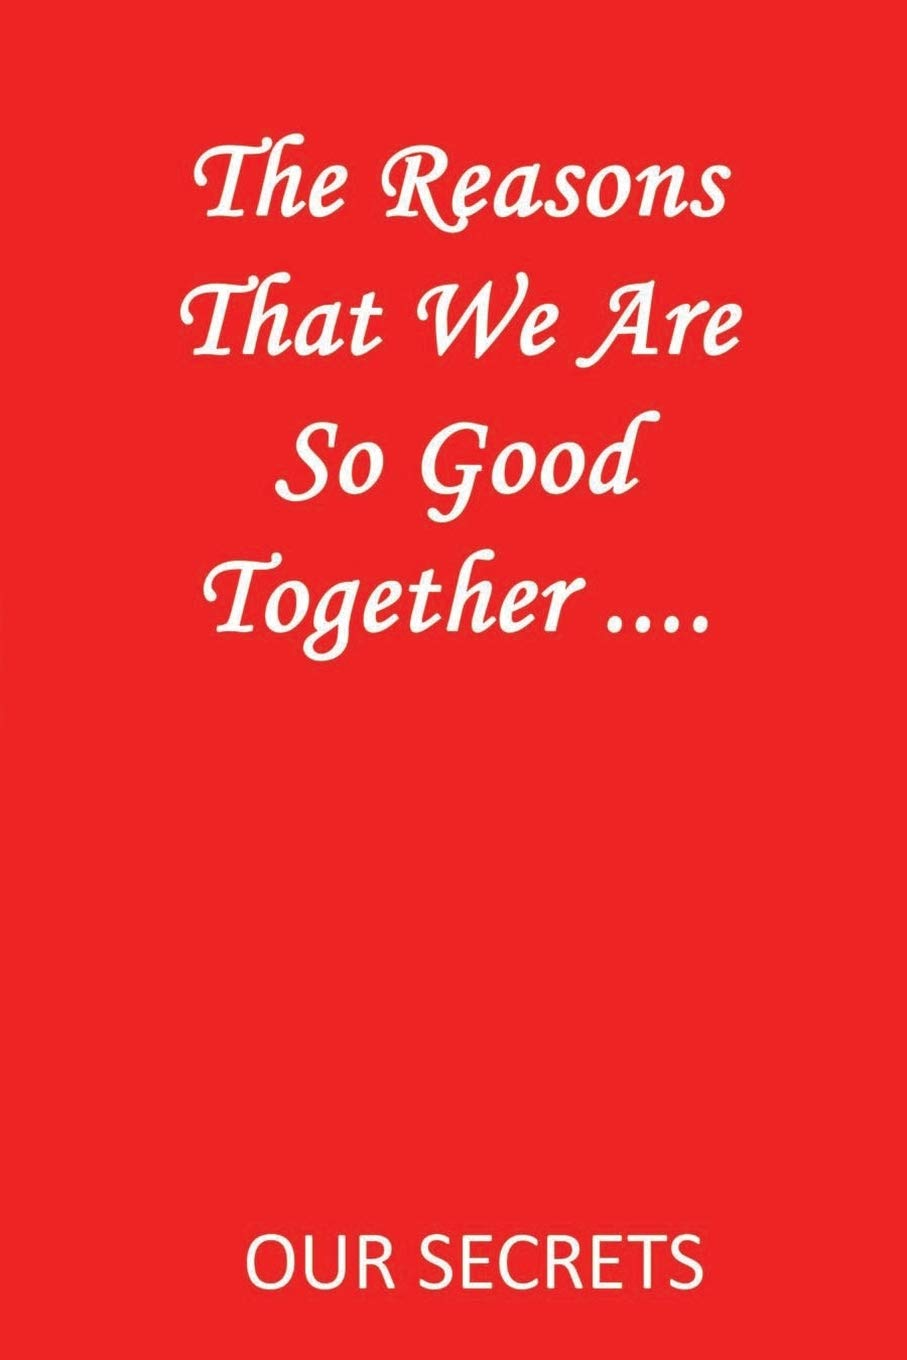 The Reasons That We Are So Good Together     : OUR SECRETS